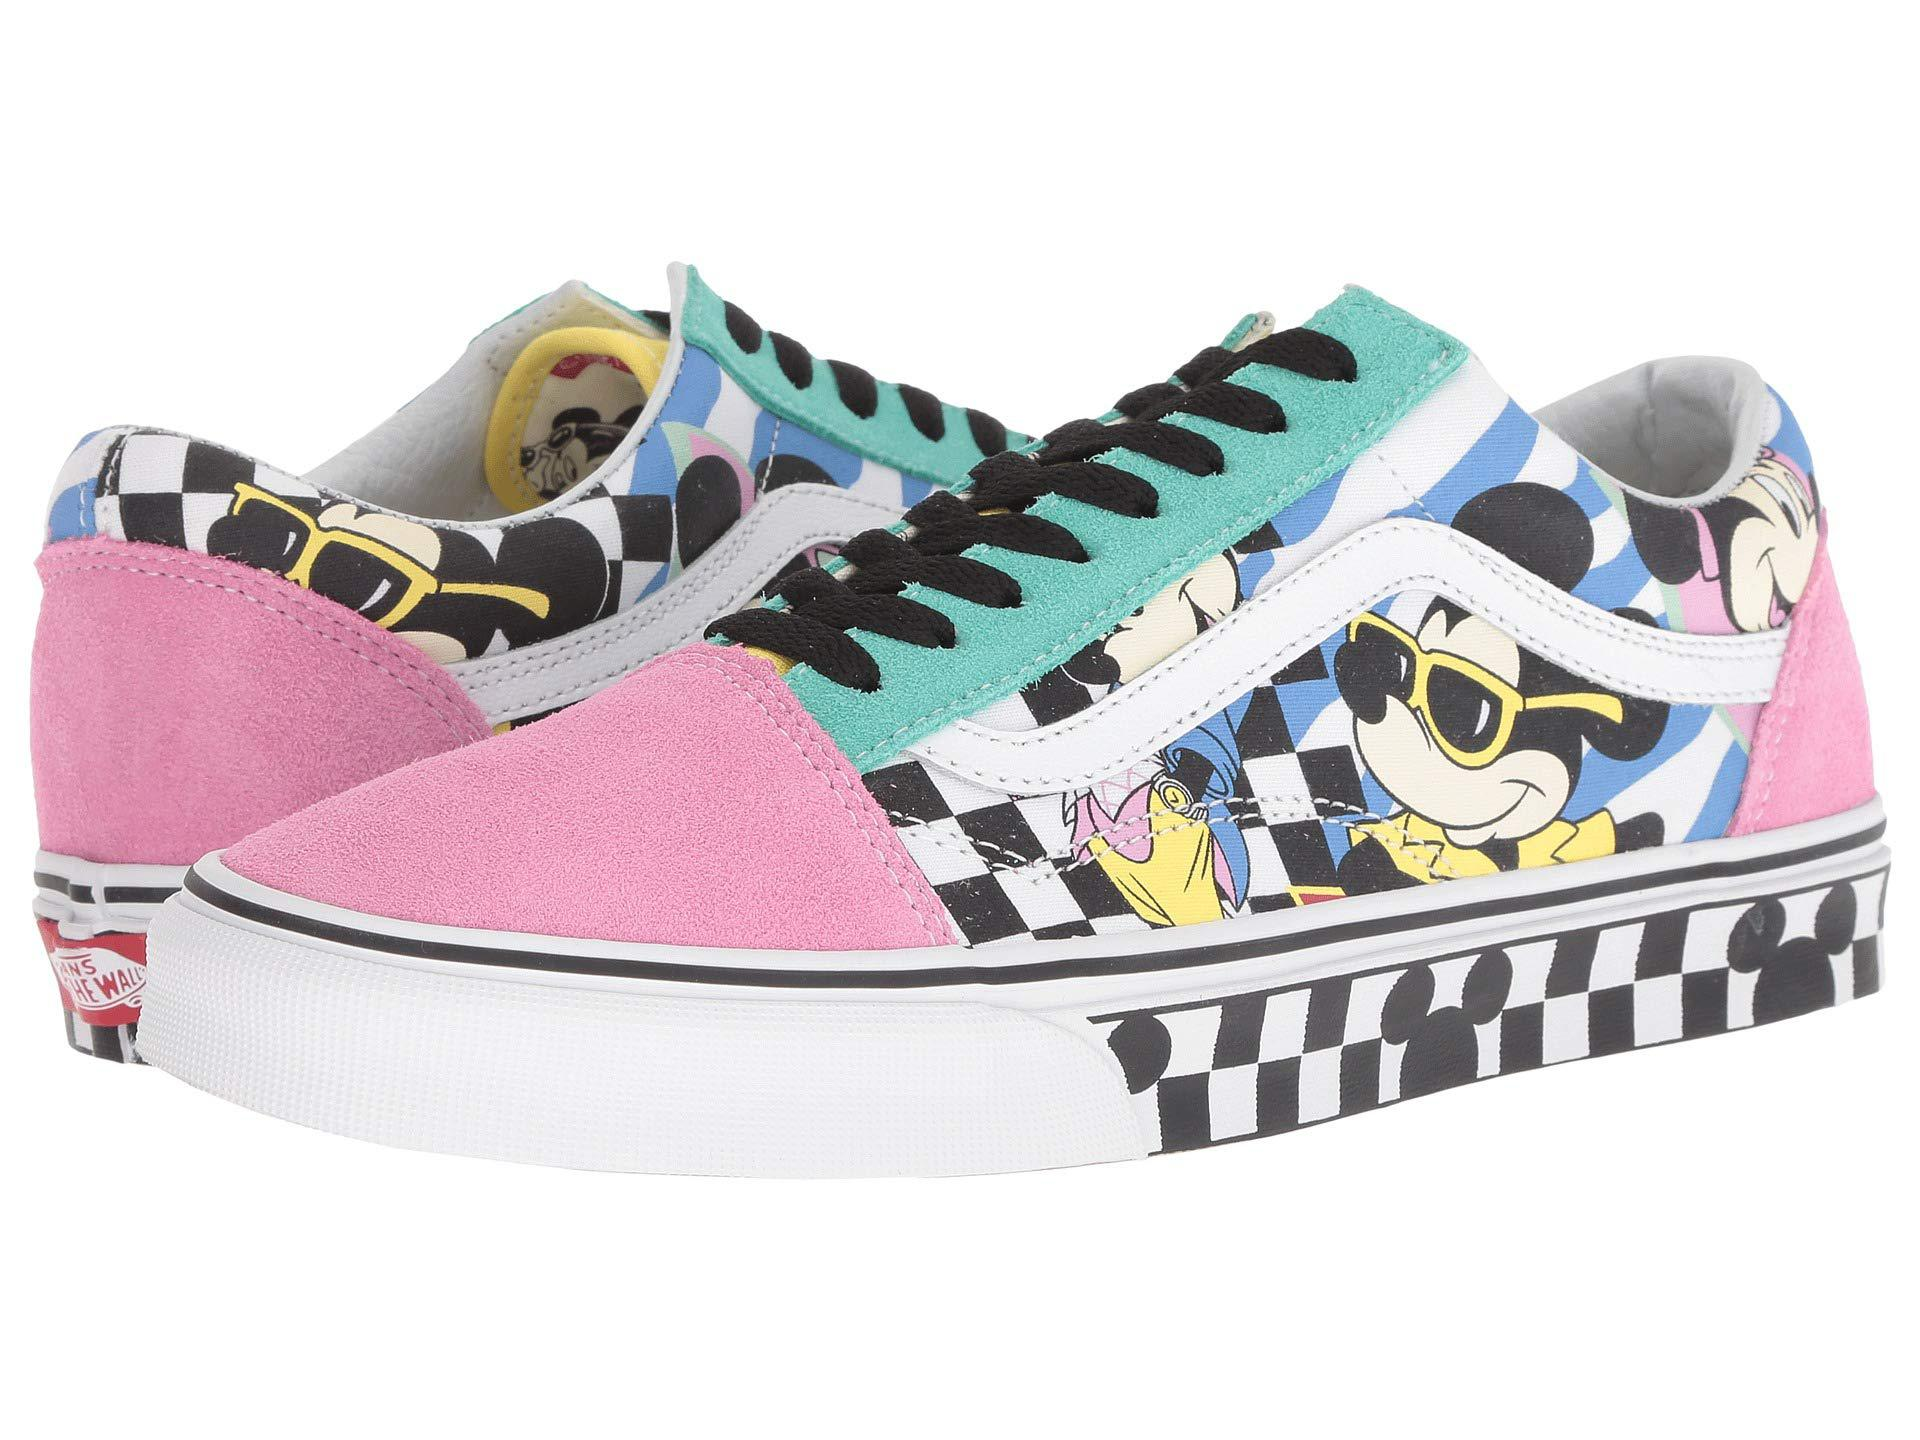 Lyst - Vans Mickey s 90th Disney(r) Old Skool ((disney) Mickey Mouse ... fb0ac8155